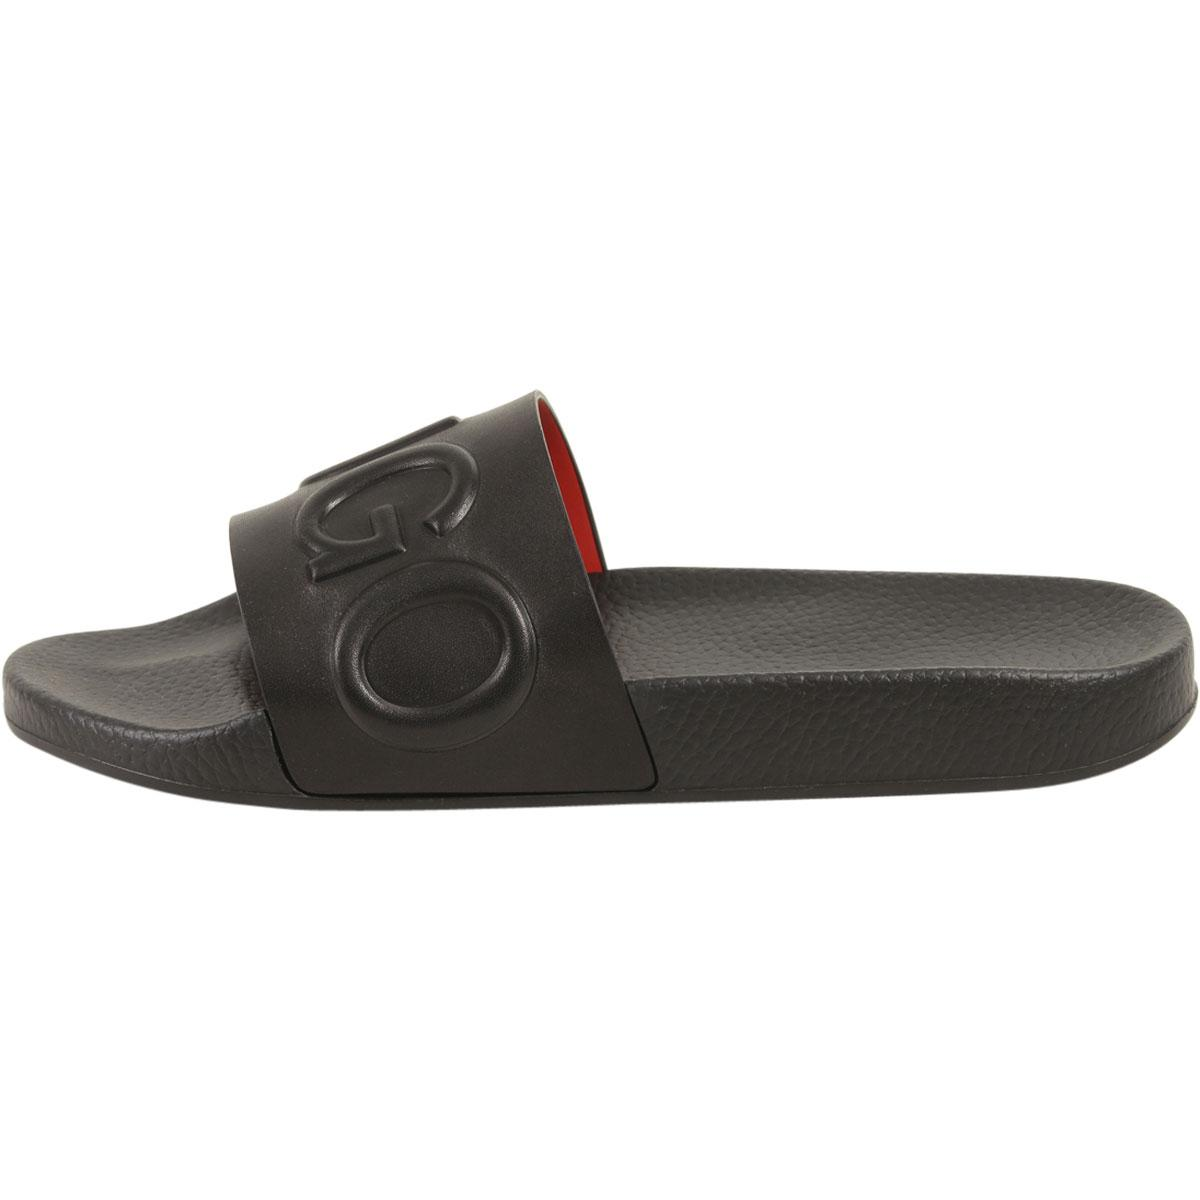 3bc26572989a Hugo Boss Men s Timeout Slides Sandals Shoes by Hugo Boss